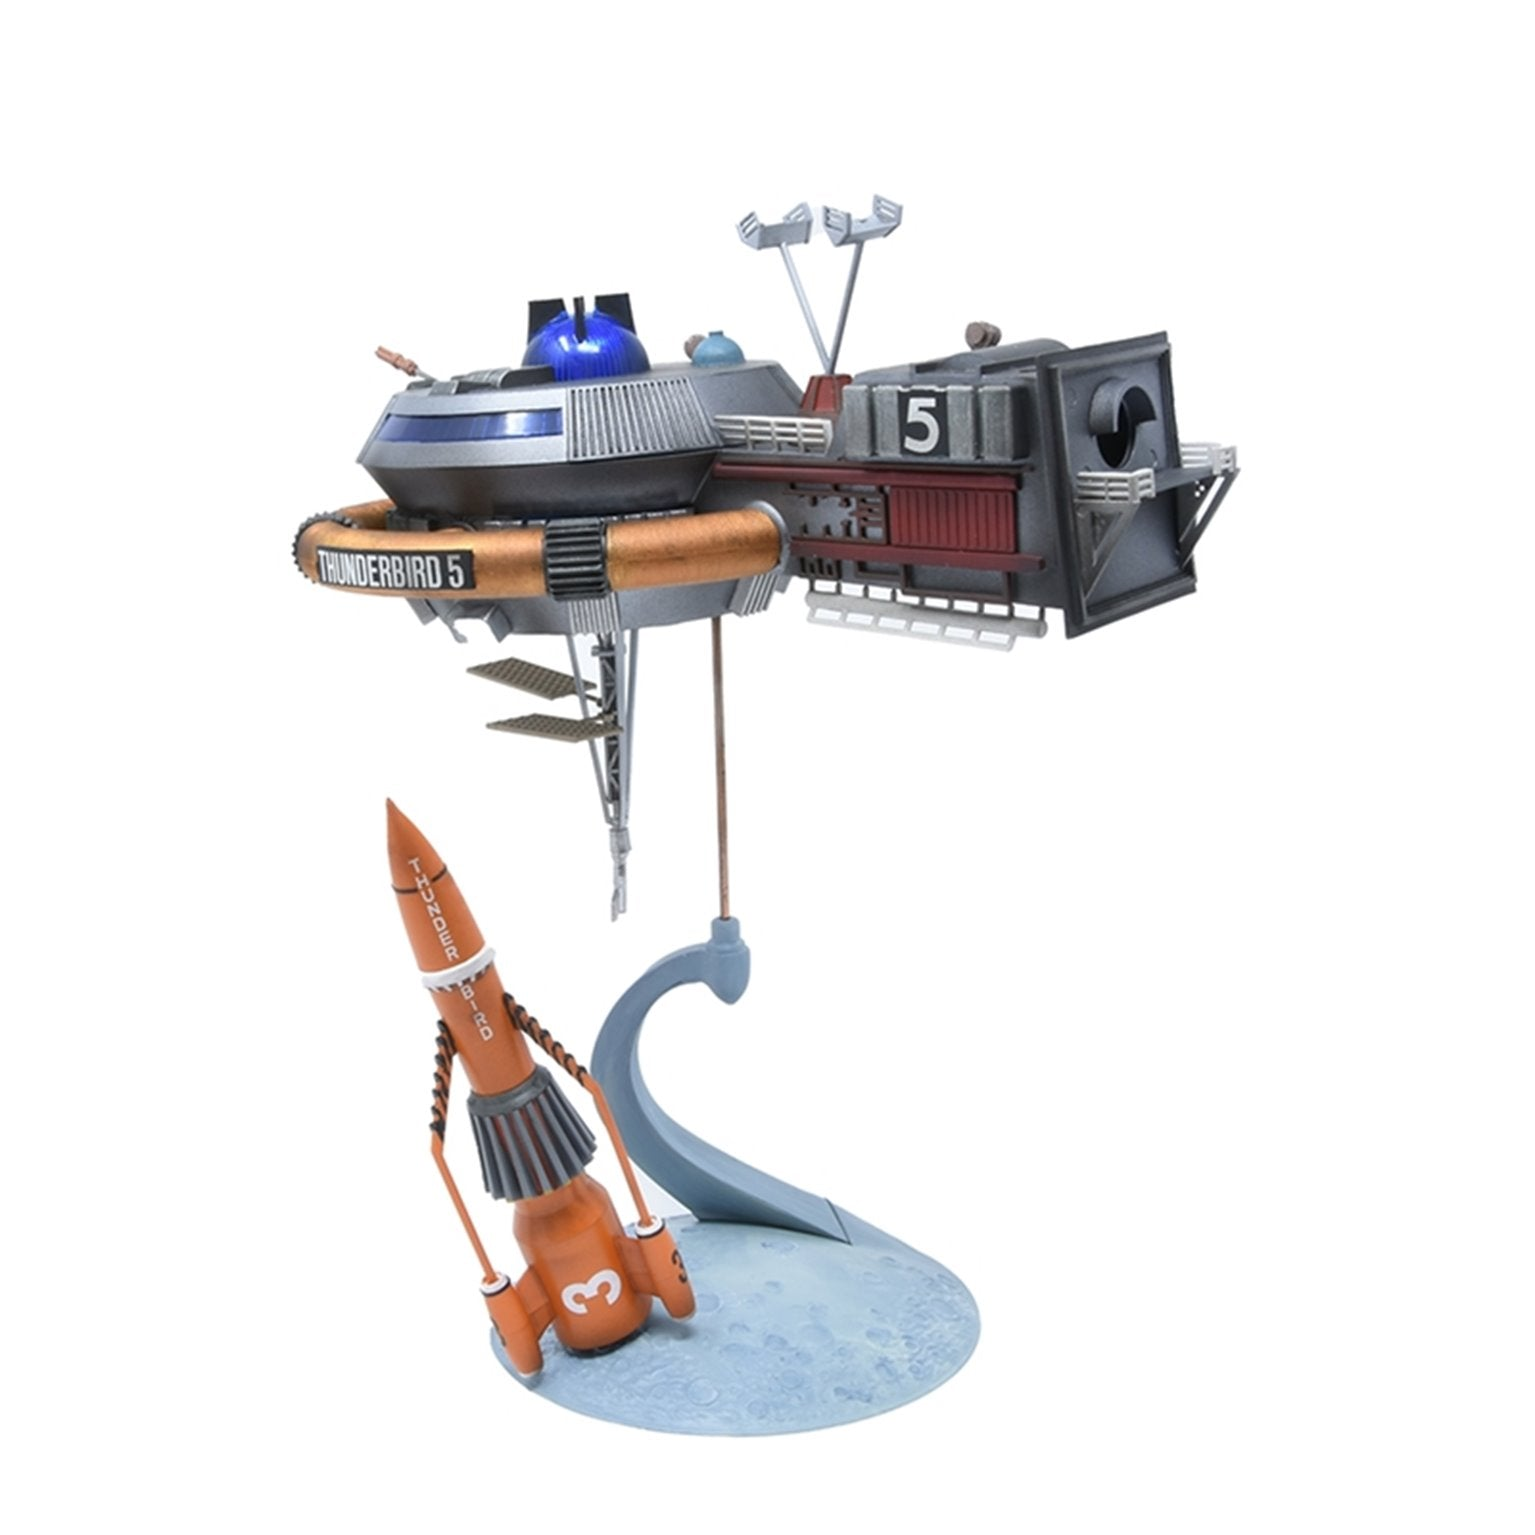 Thunderbird 5 with Thunderbird 3 Model Kit - The Gerry Anderson Store